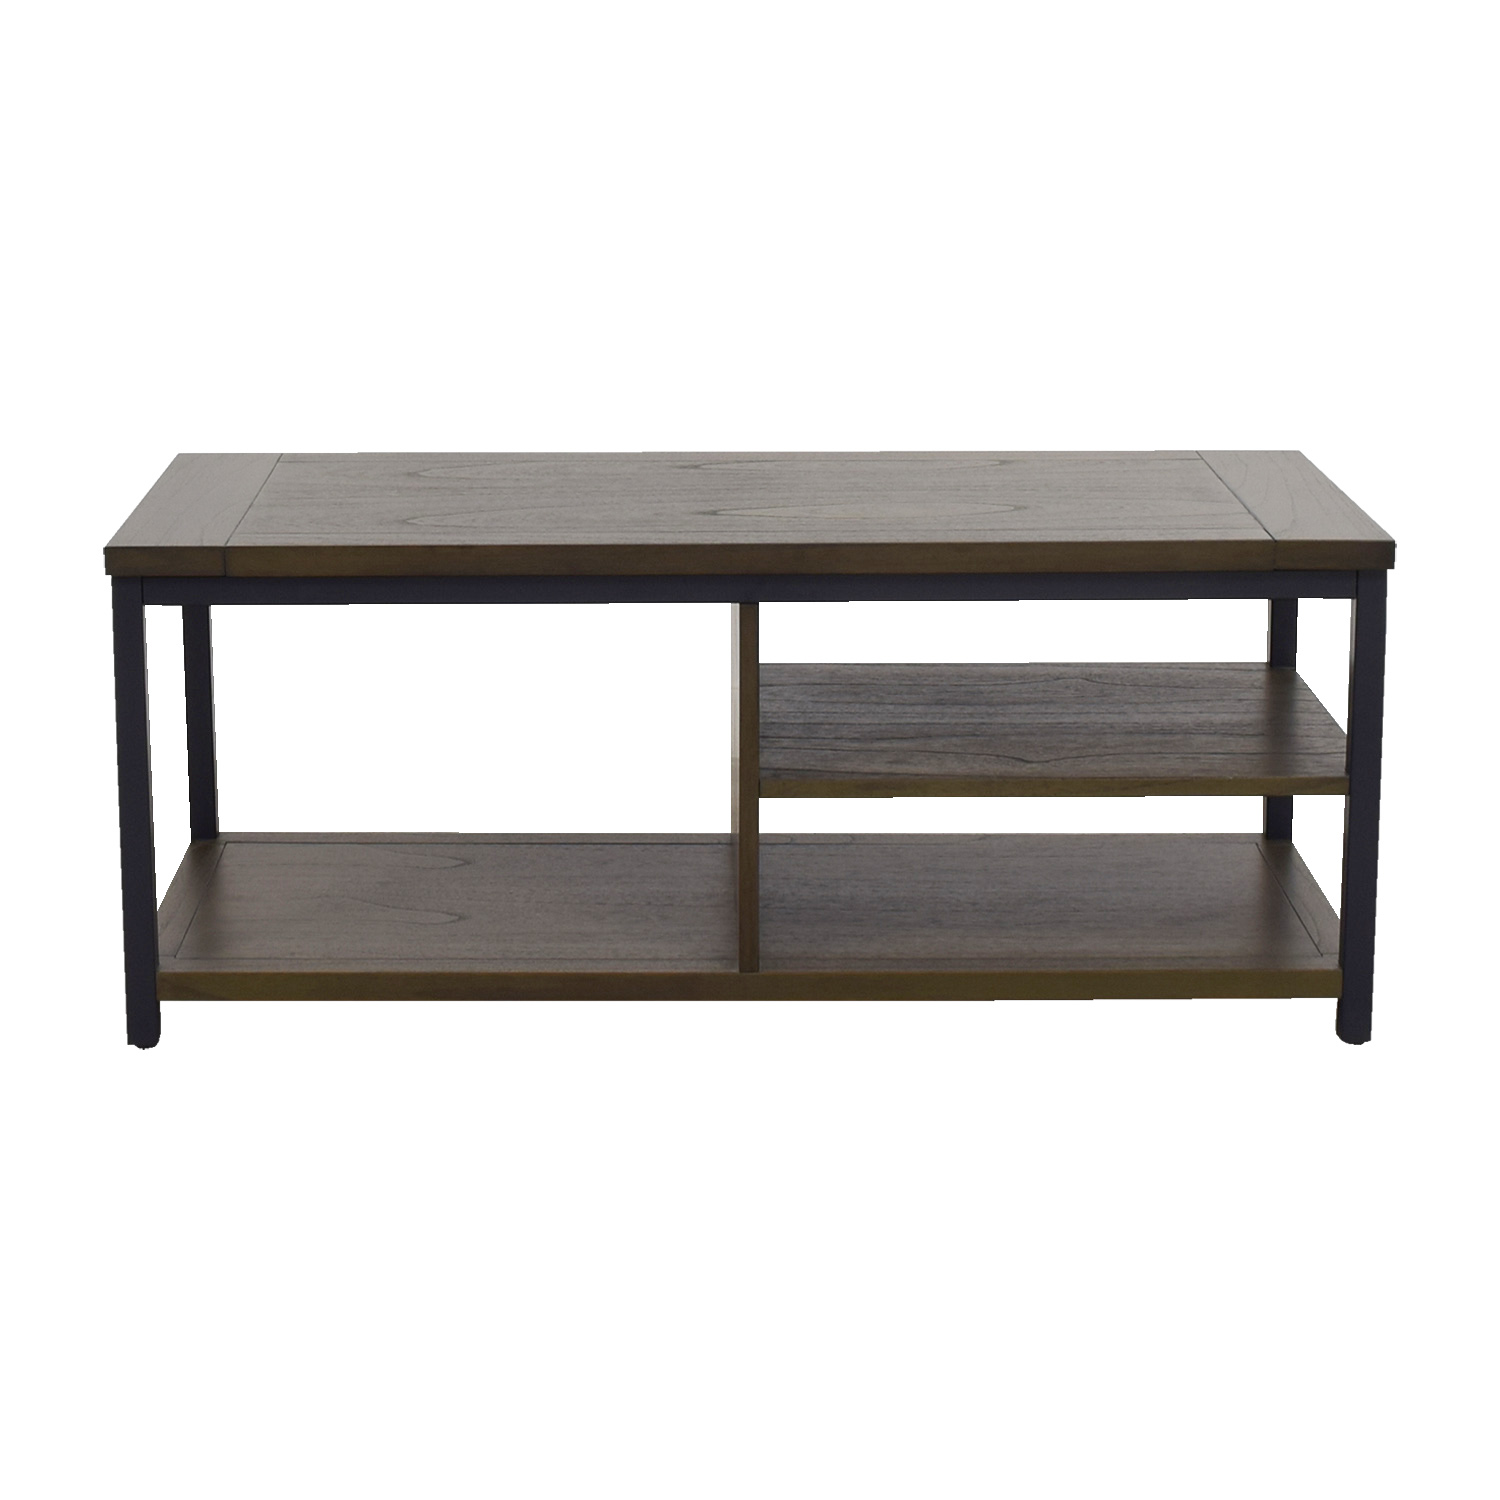 Crate & Barrel Crate & Barrel Green Tea and Cobalt Blue Media Console for sale